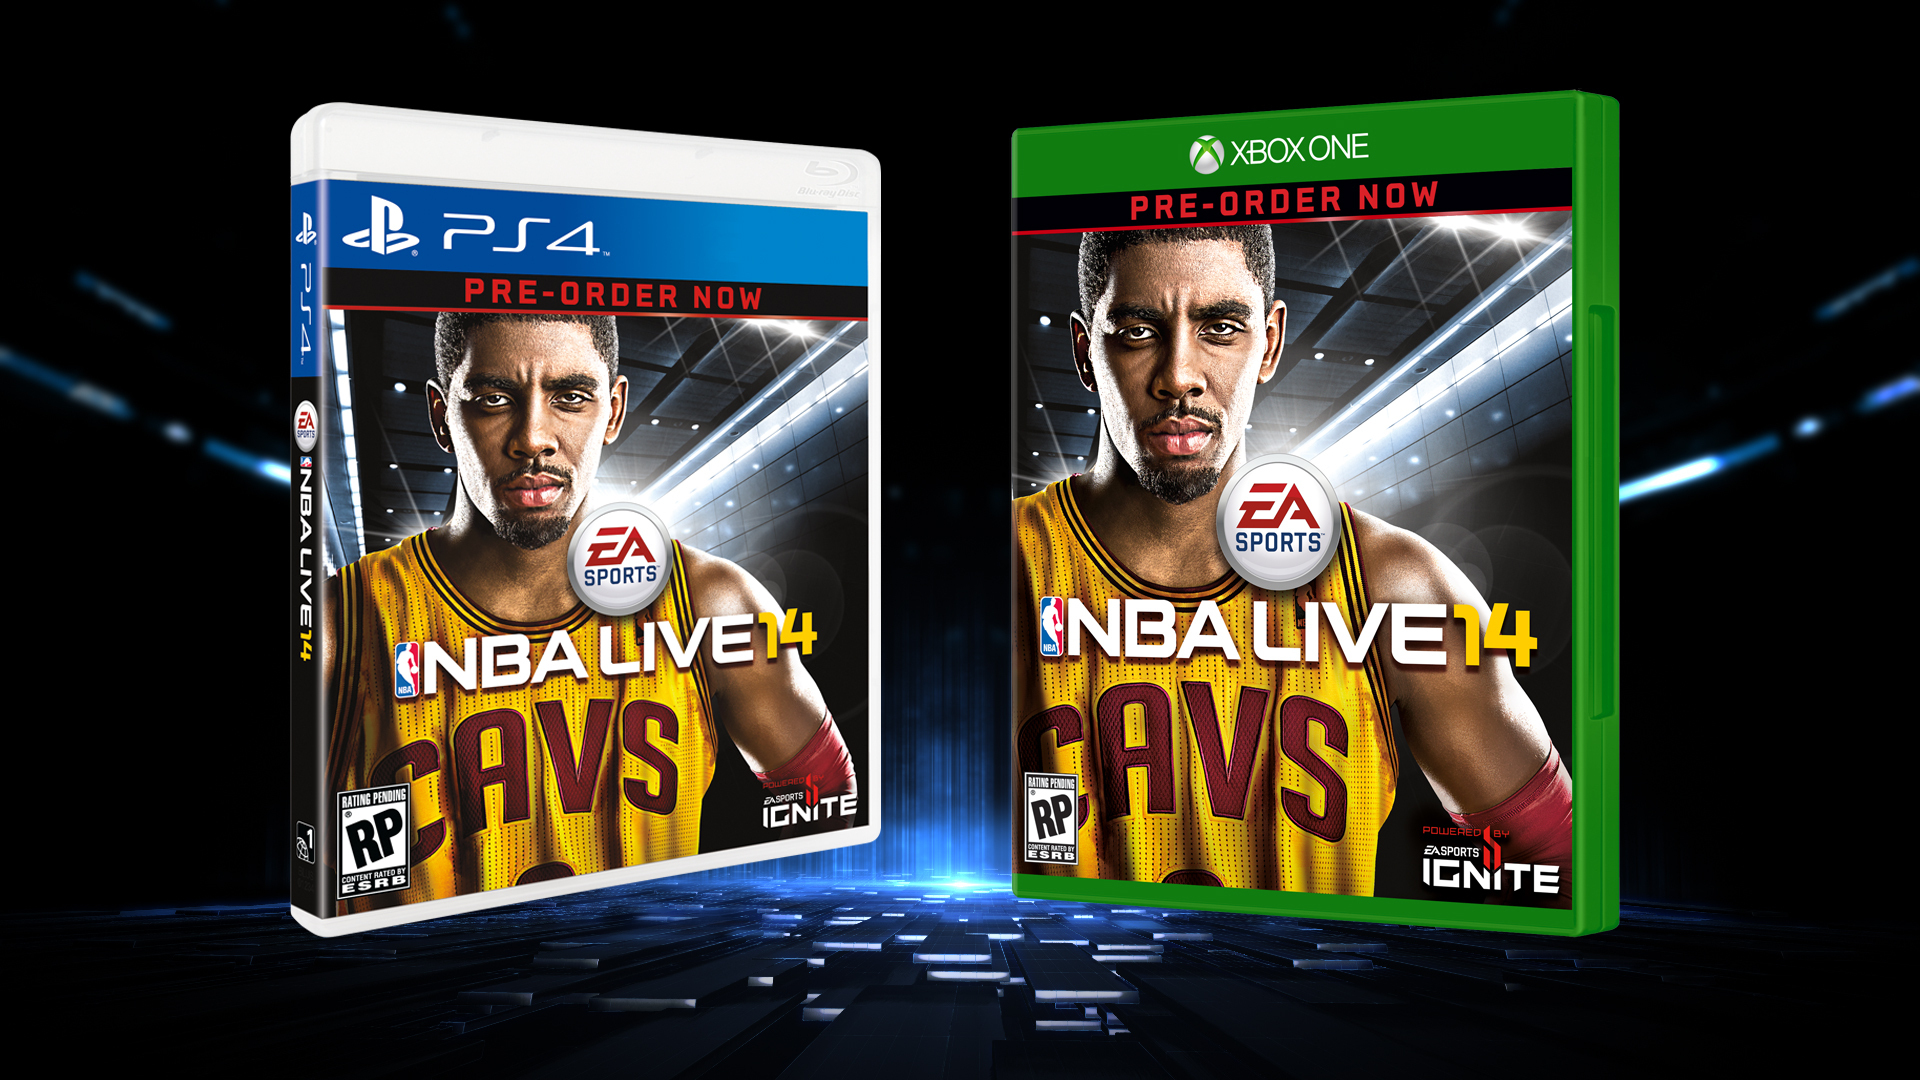 nba-live14-cover-art